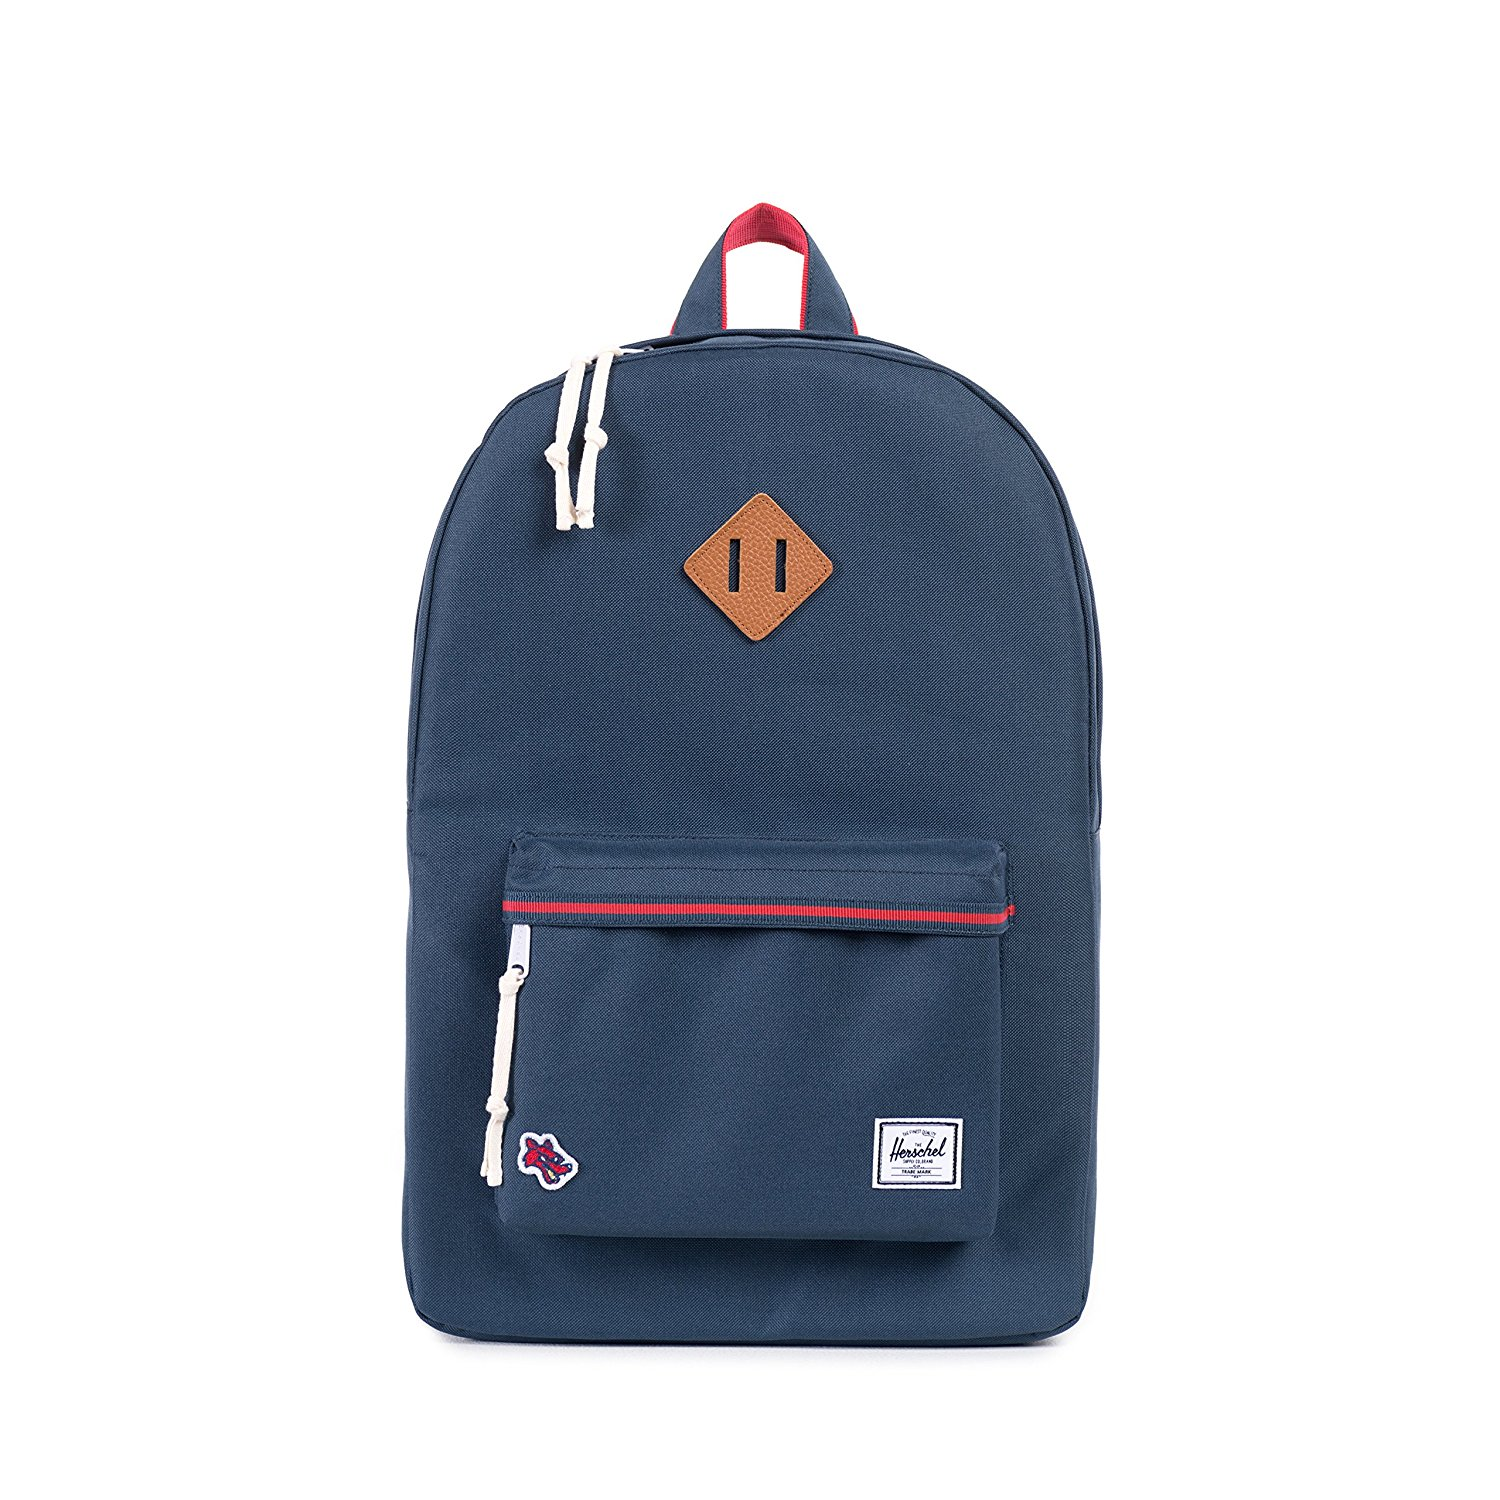 d213fd8e76e Get Quotations · Herschel Supply Co. Heritage Home Away Backpack